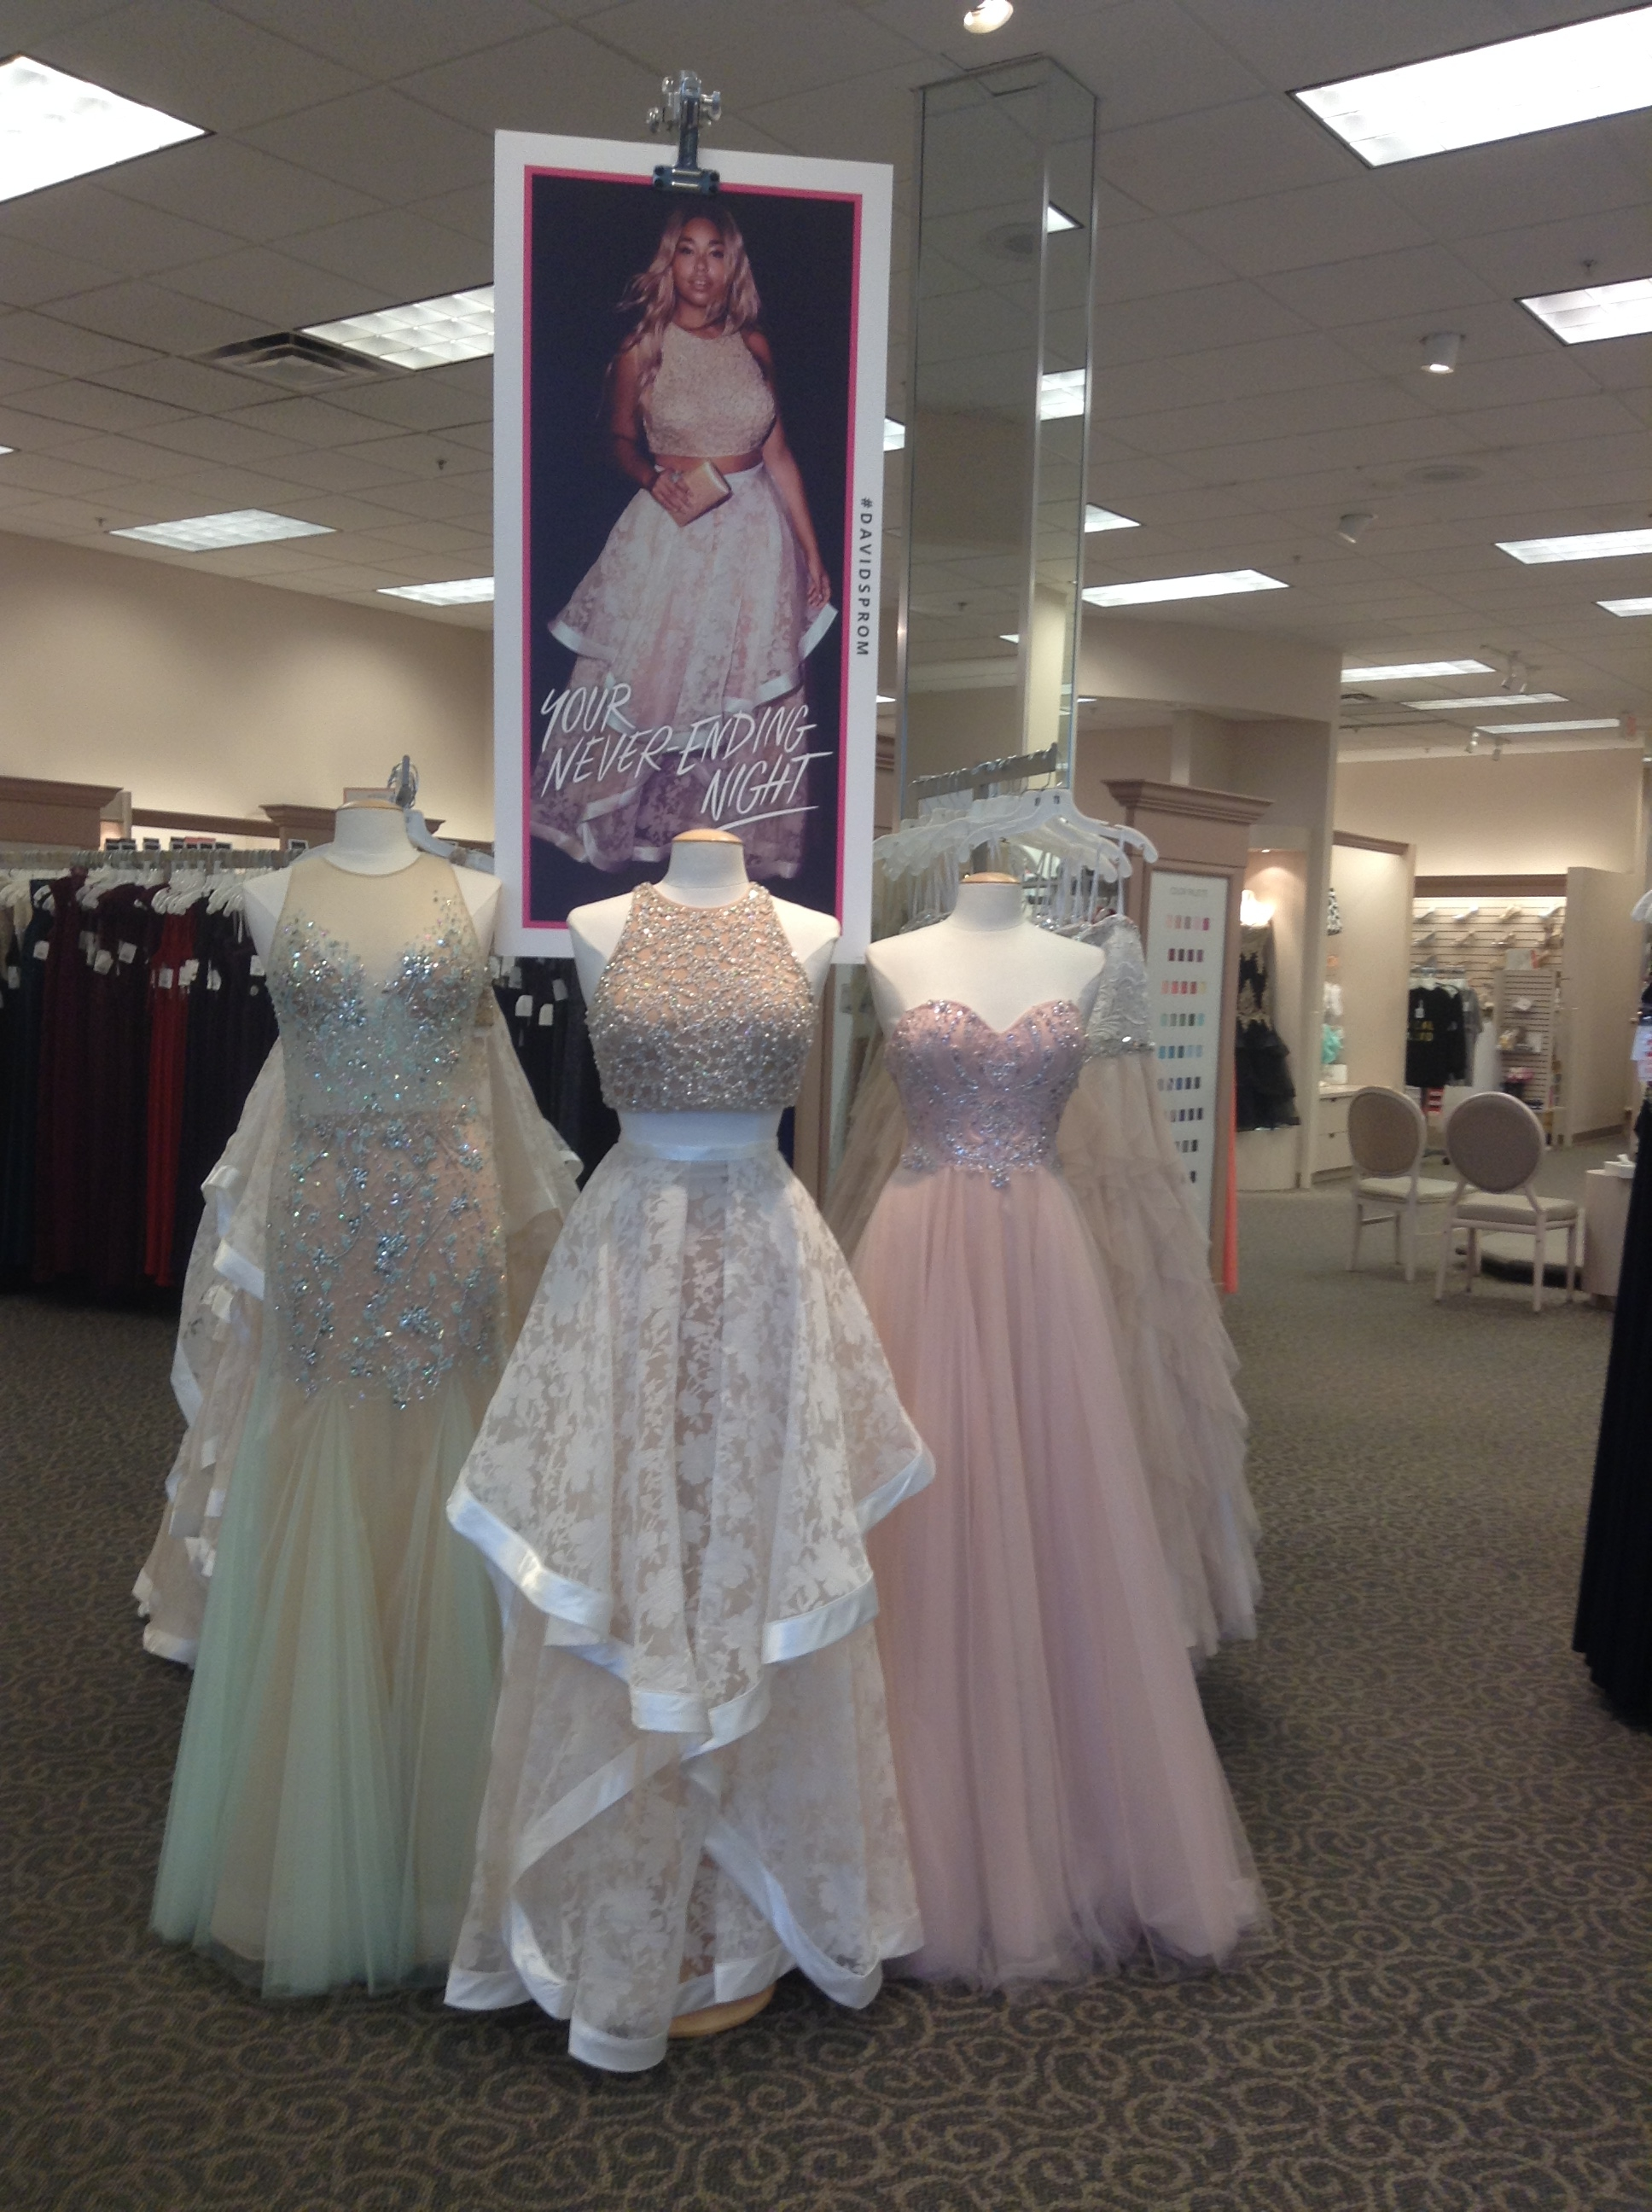 Southaven, MS davids bridal | Find davids bridal in Southaven, MS